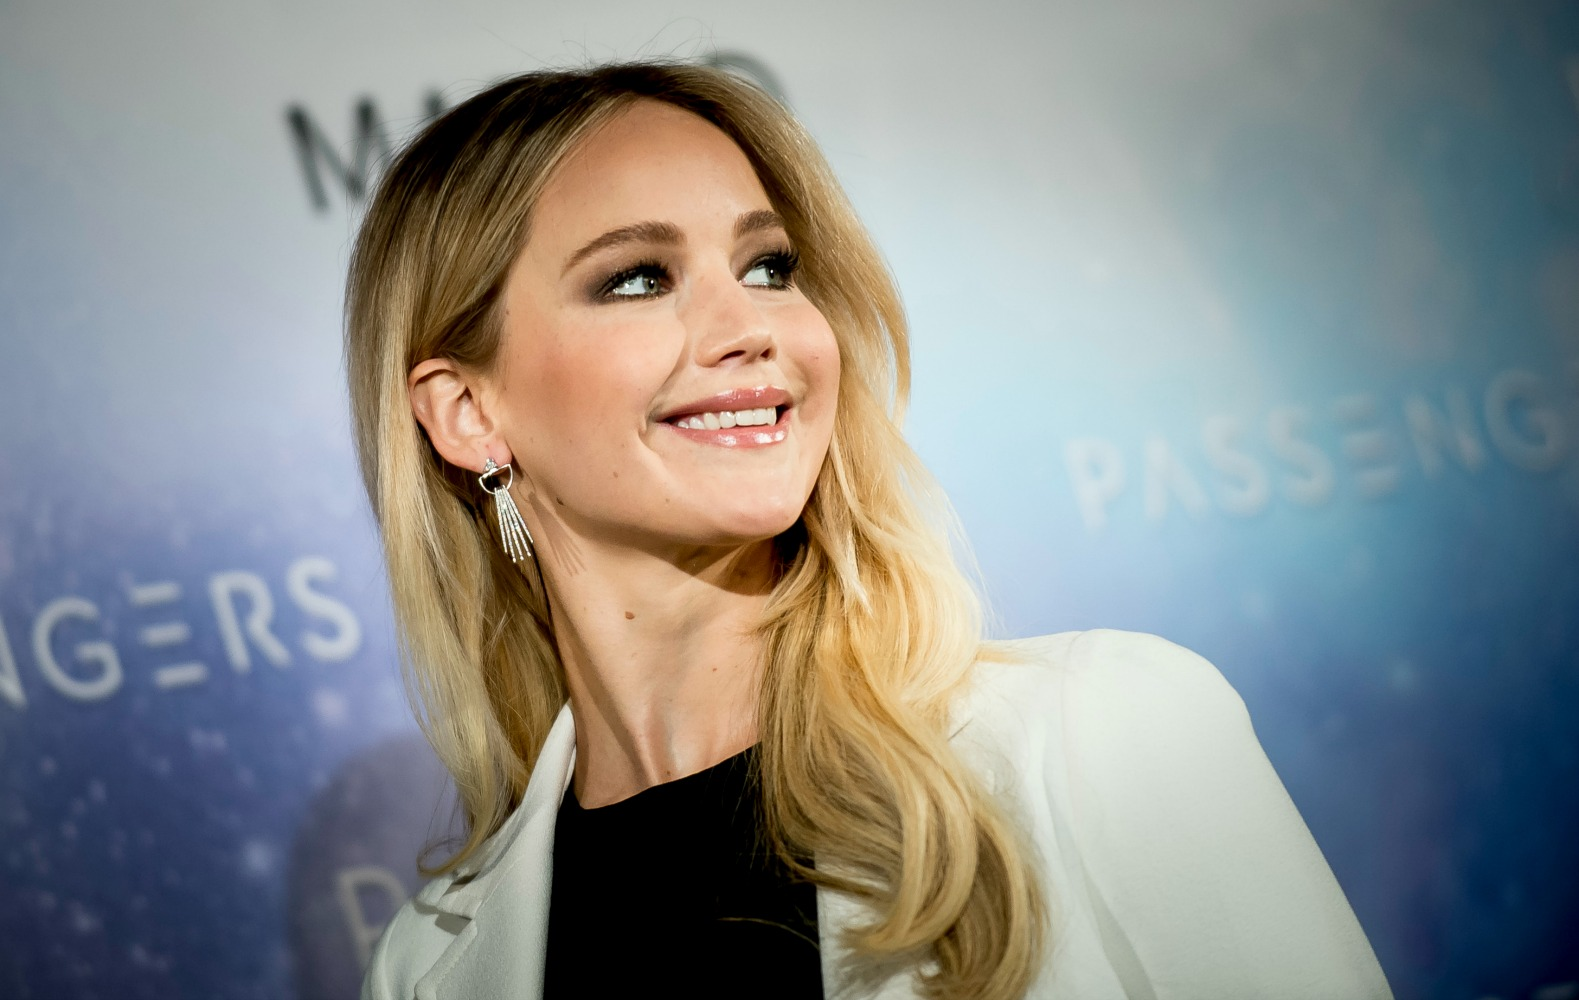 Here's all of Jennifer Lawrence's beautiful and lush hair ...